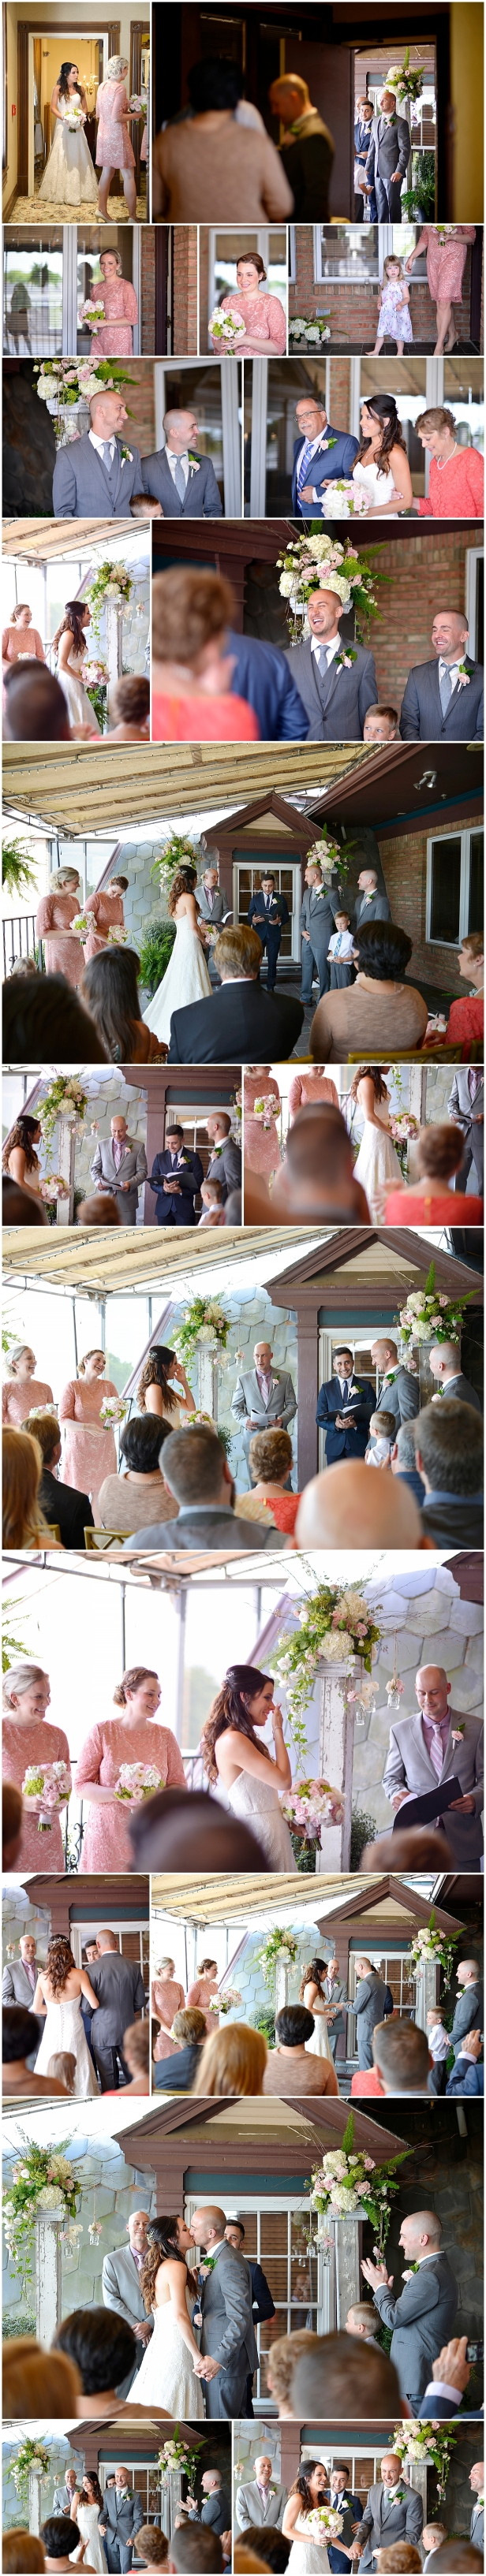 wedding-ceremony-in-wothington-inn